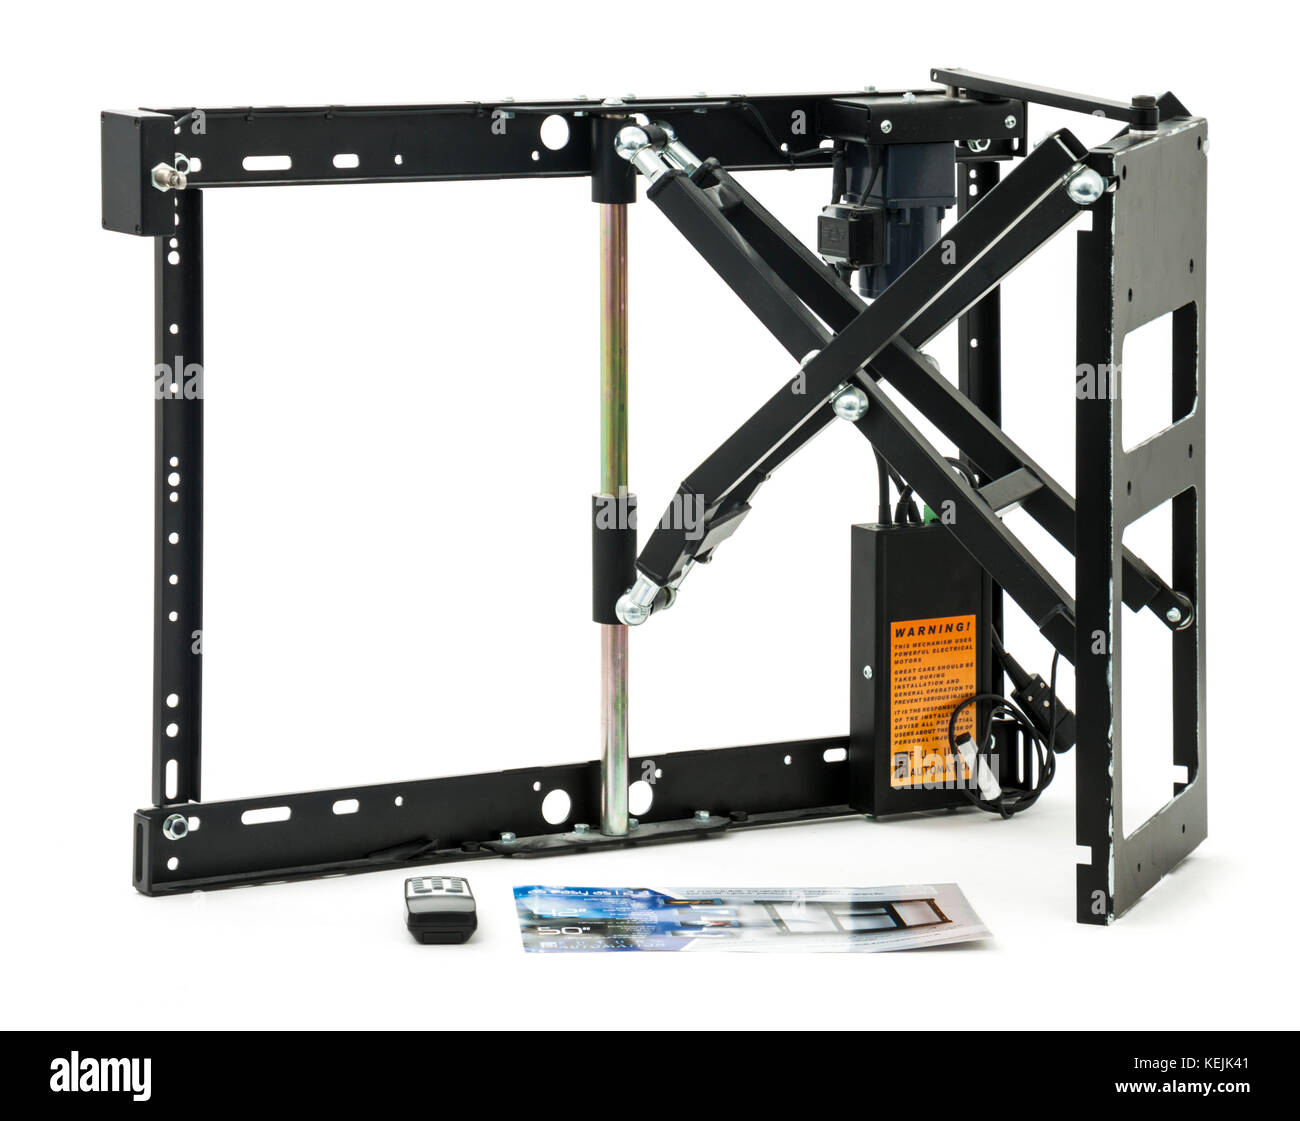 Large heavy-duty motorized and articulated TV wall mounting bracket for screens up to 50 inches in size by Future - Stock Image